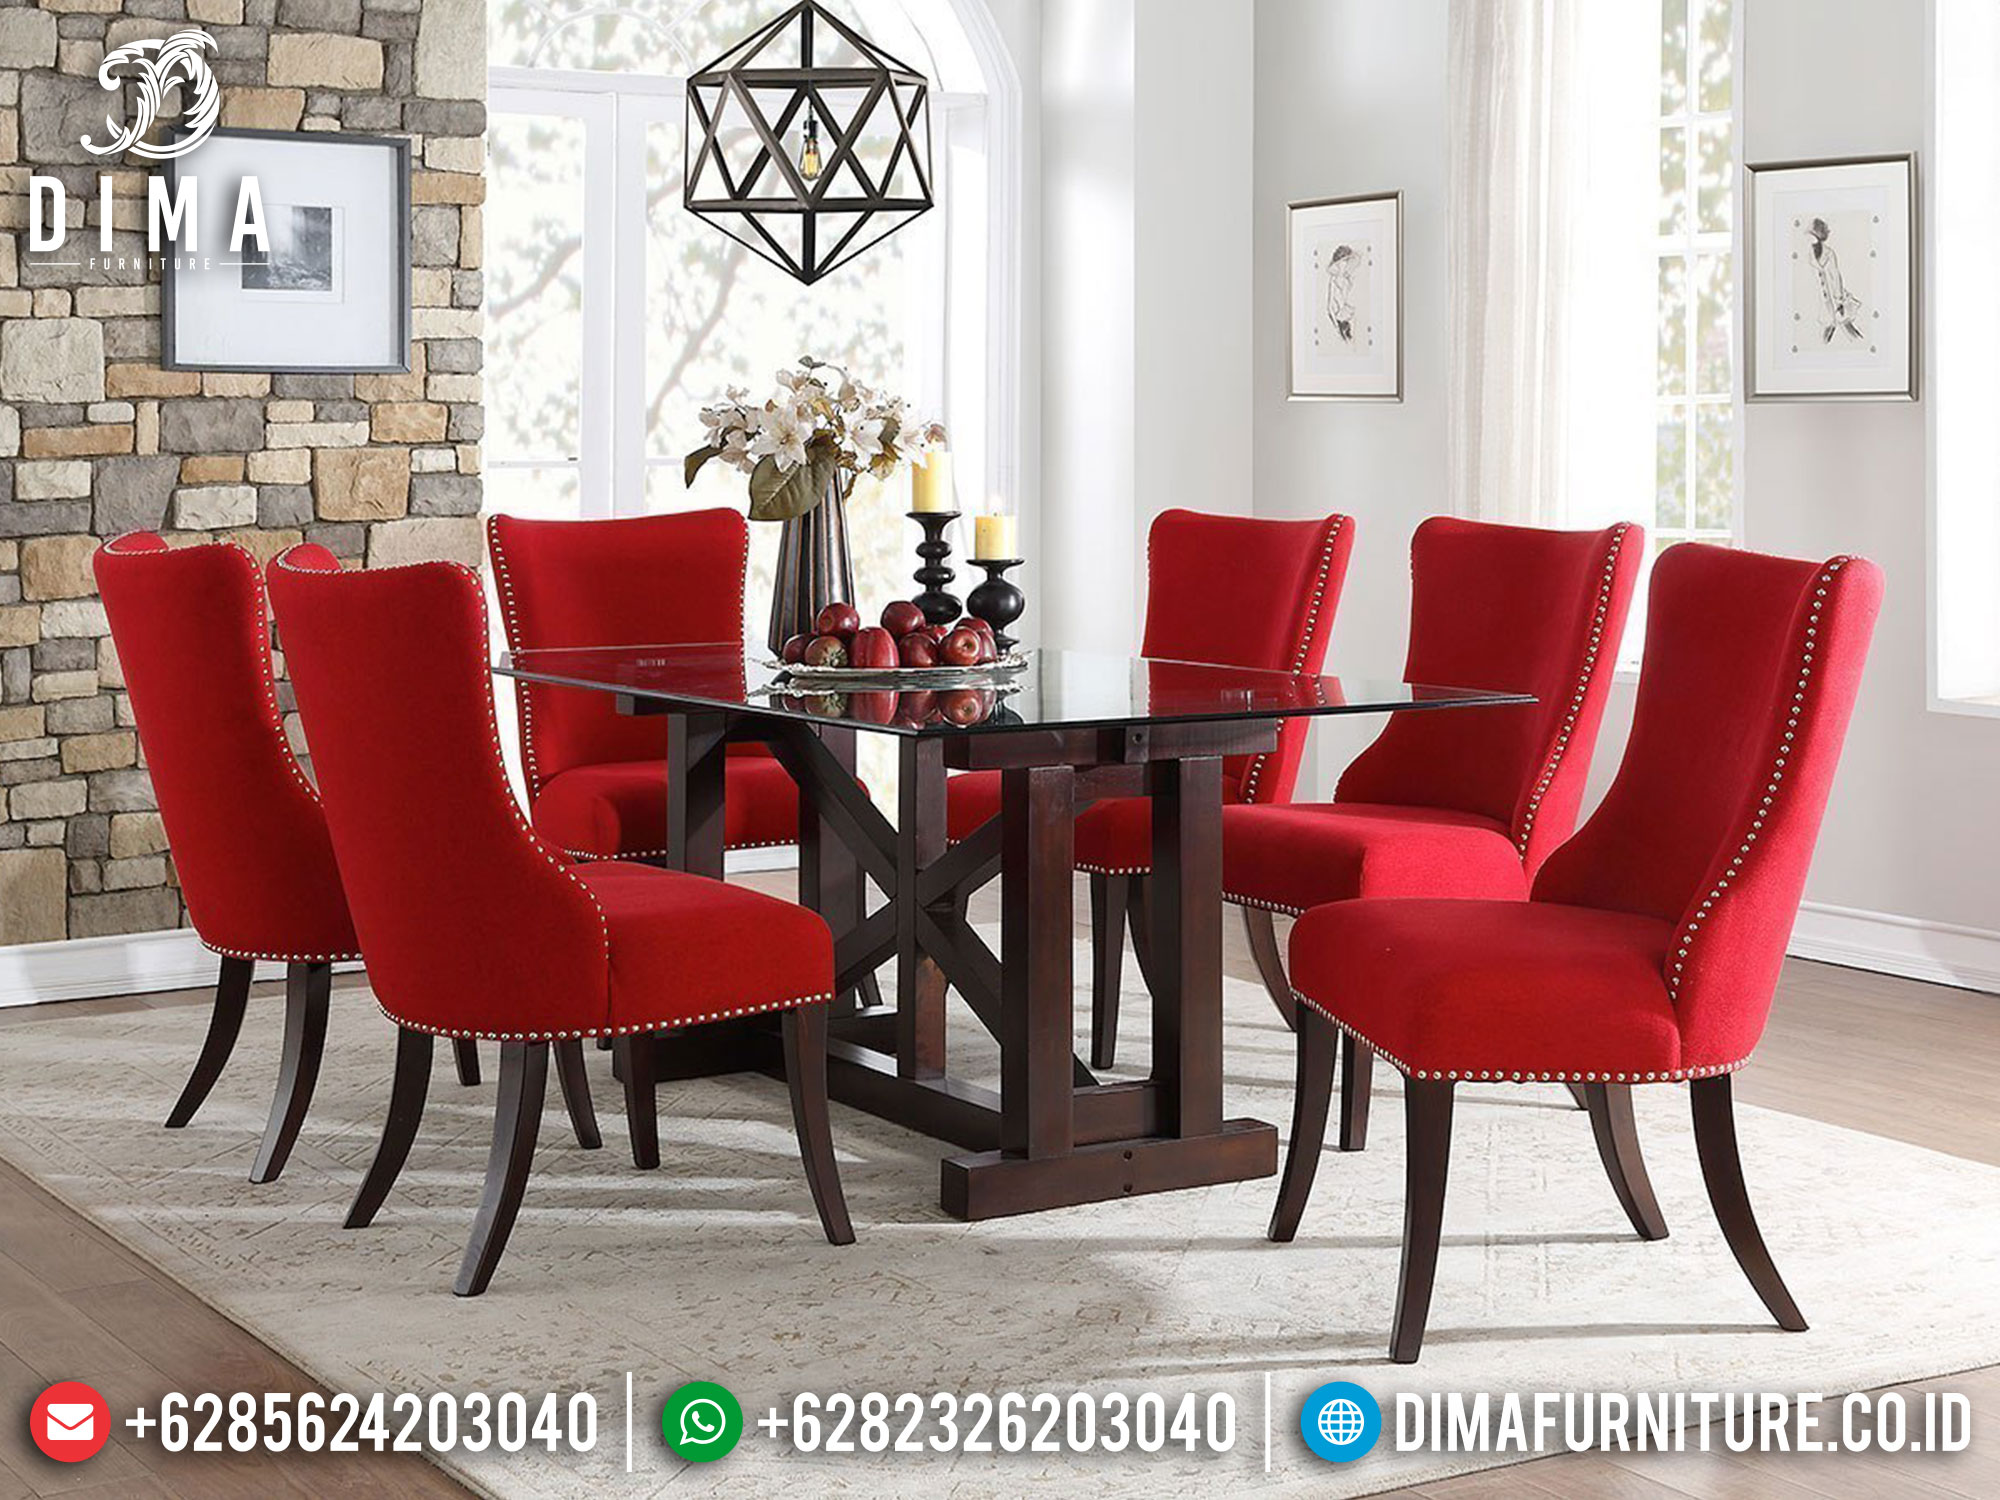 Exotic Style Meja Makan Minimalis Modern Luxury Furniture Jepara Mm-1071